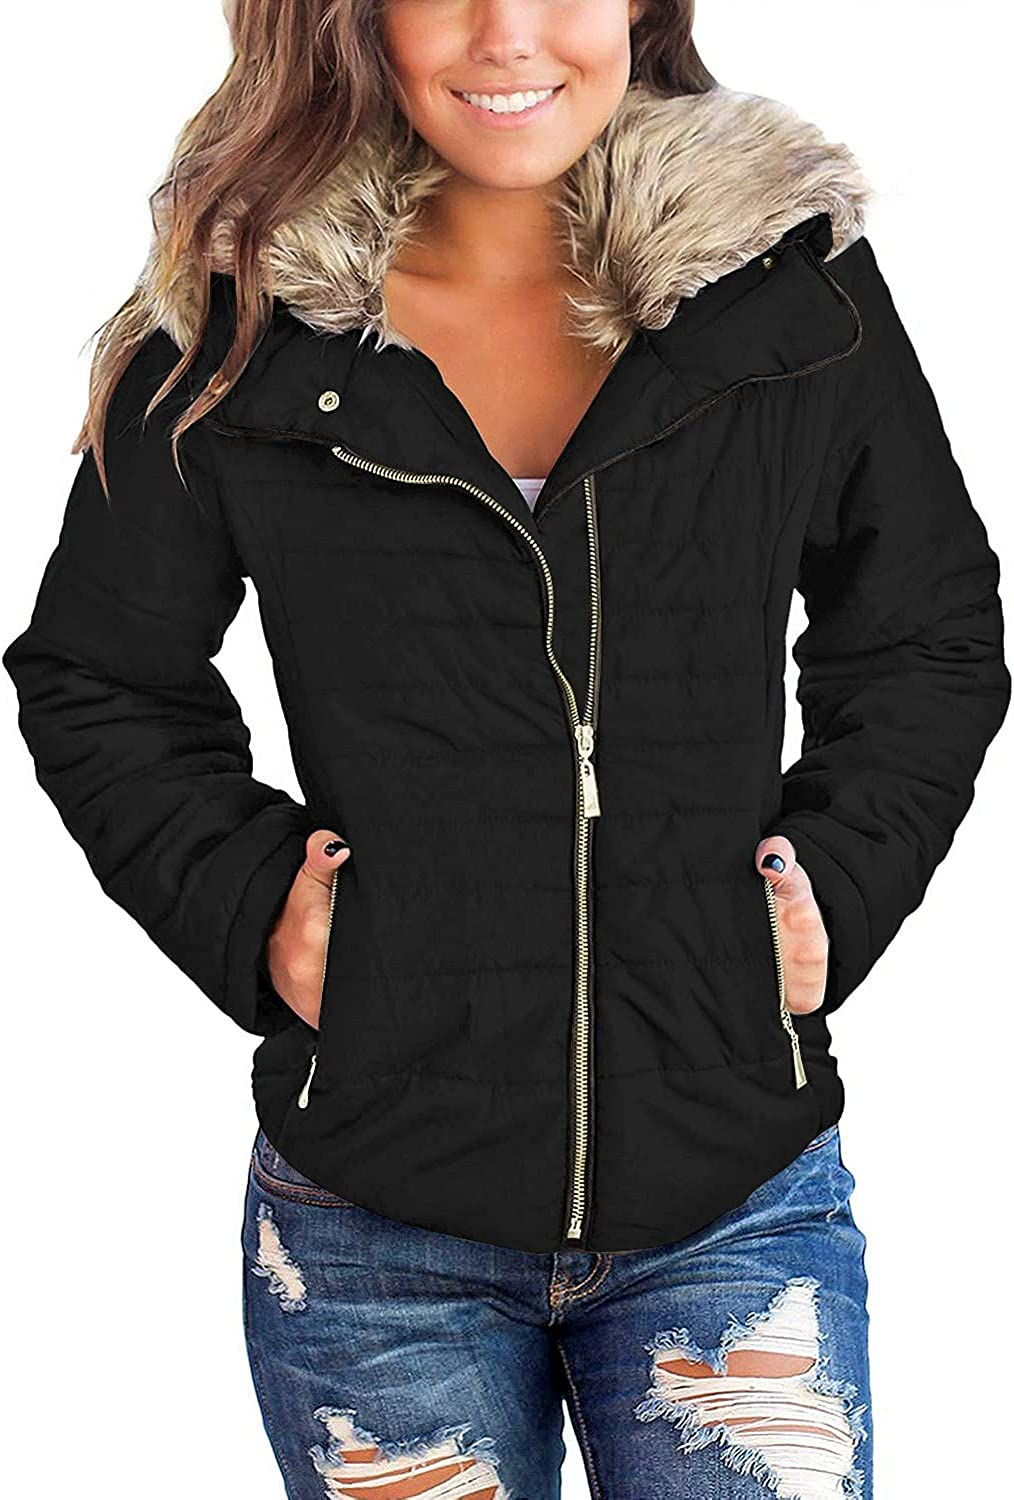 Uqnaivs Womens Winter Quilted Jacket Faux Up Zip Collar Park Indianapolis Challenge the lowest price of Japan ☆ Mall Fur